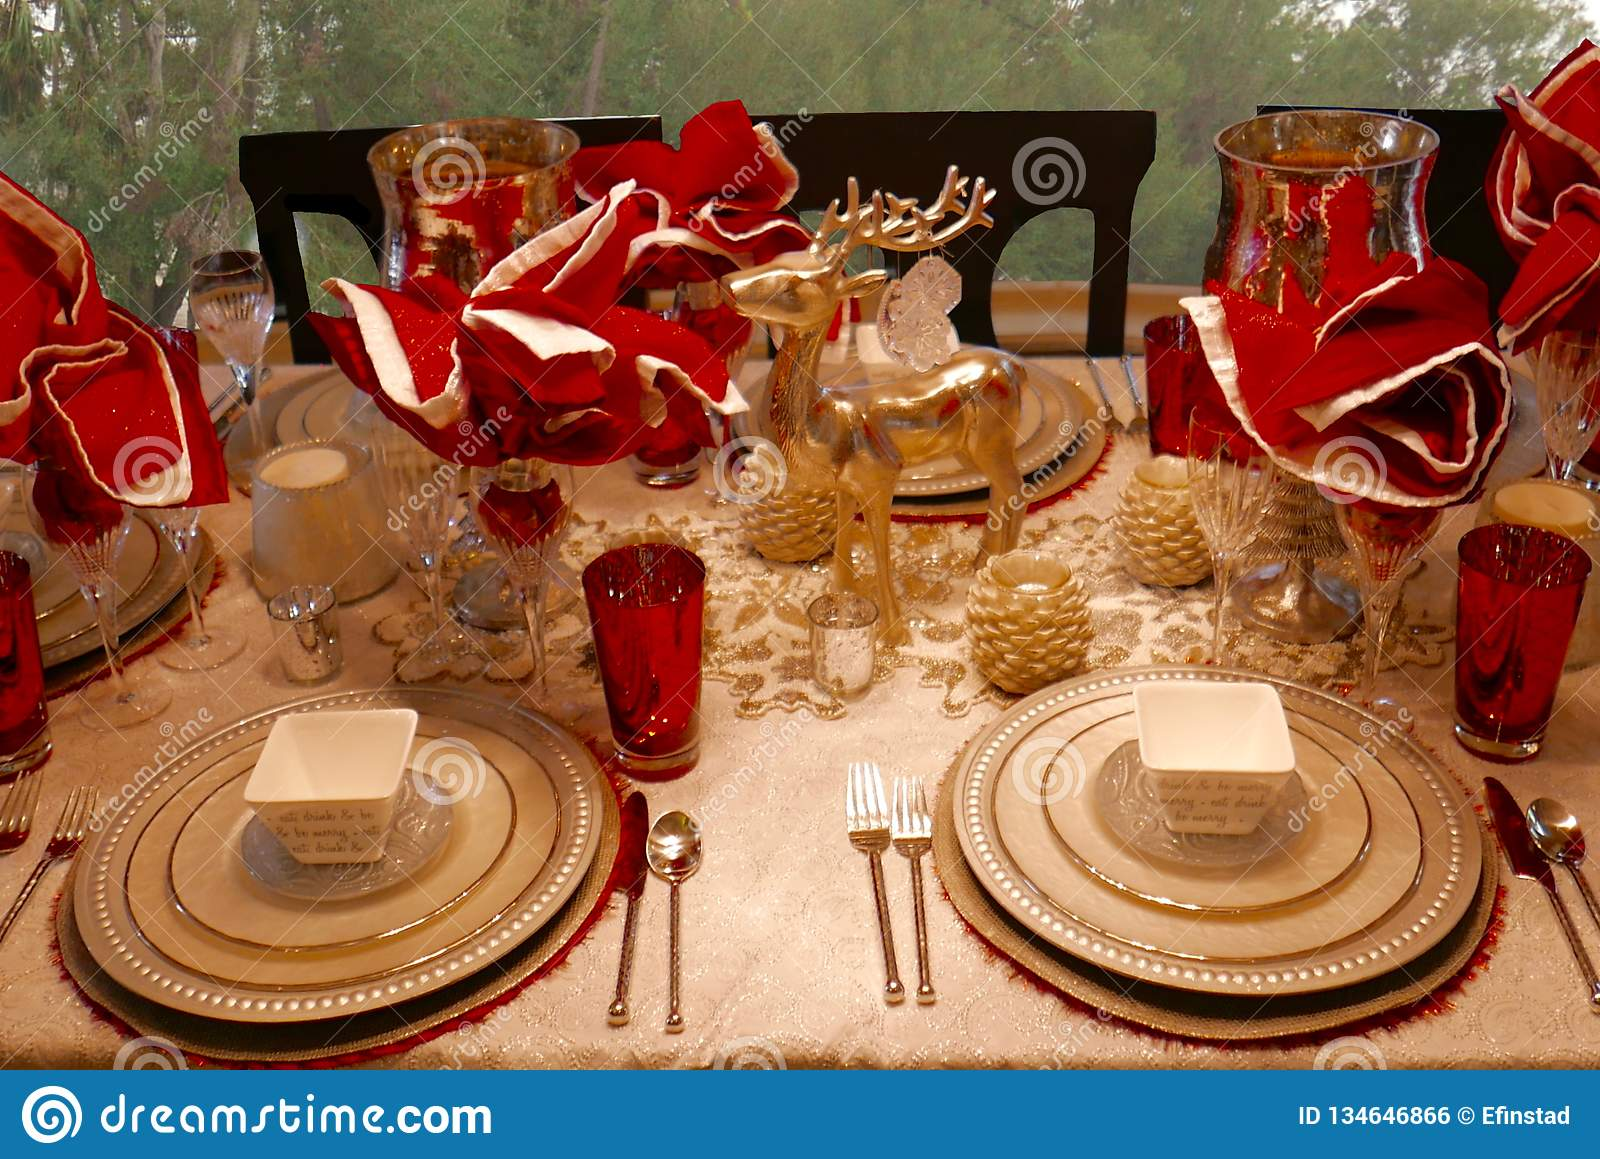 Christmas Decor Elegant Dining Table Setting In Red Gold And Silver Stock Photo Image Of Interior Formal 134646866